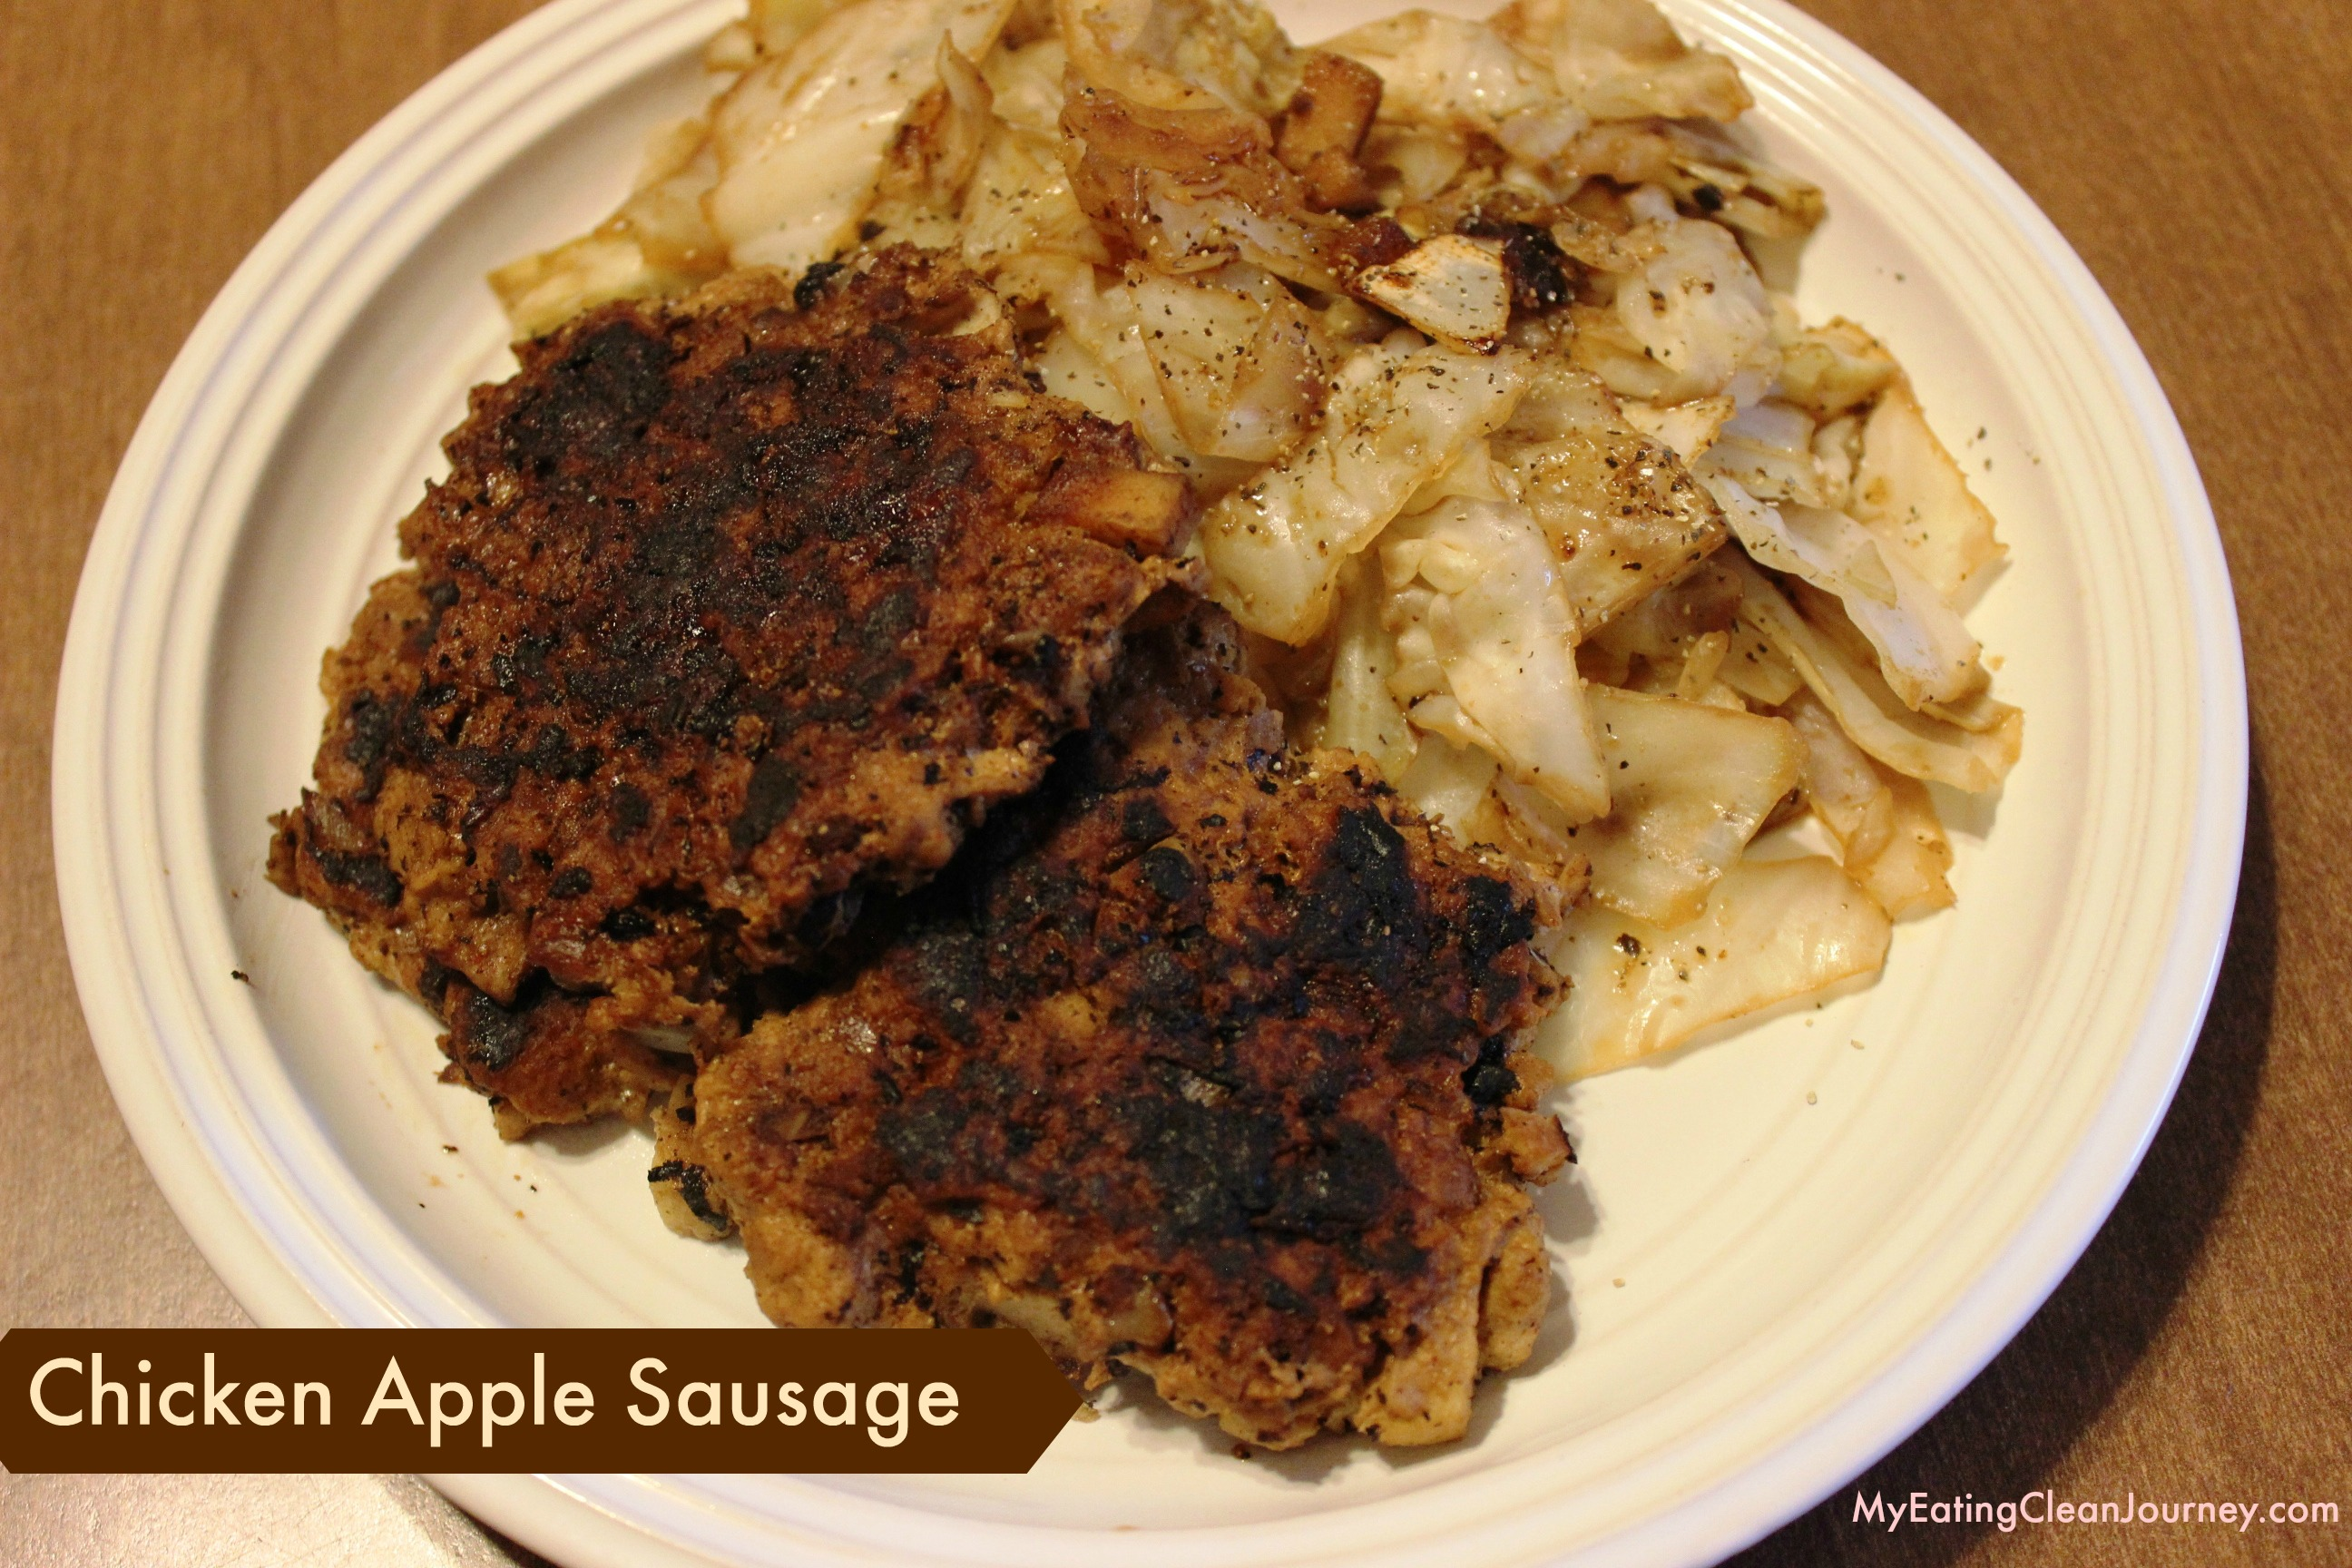 Chicken Apple Sausage Patties - My Eating Clean Journey